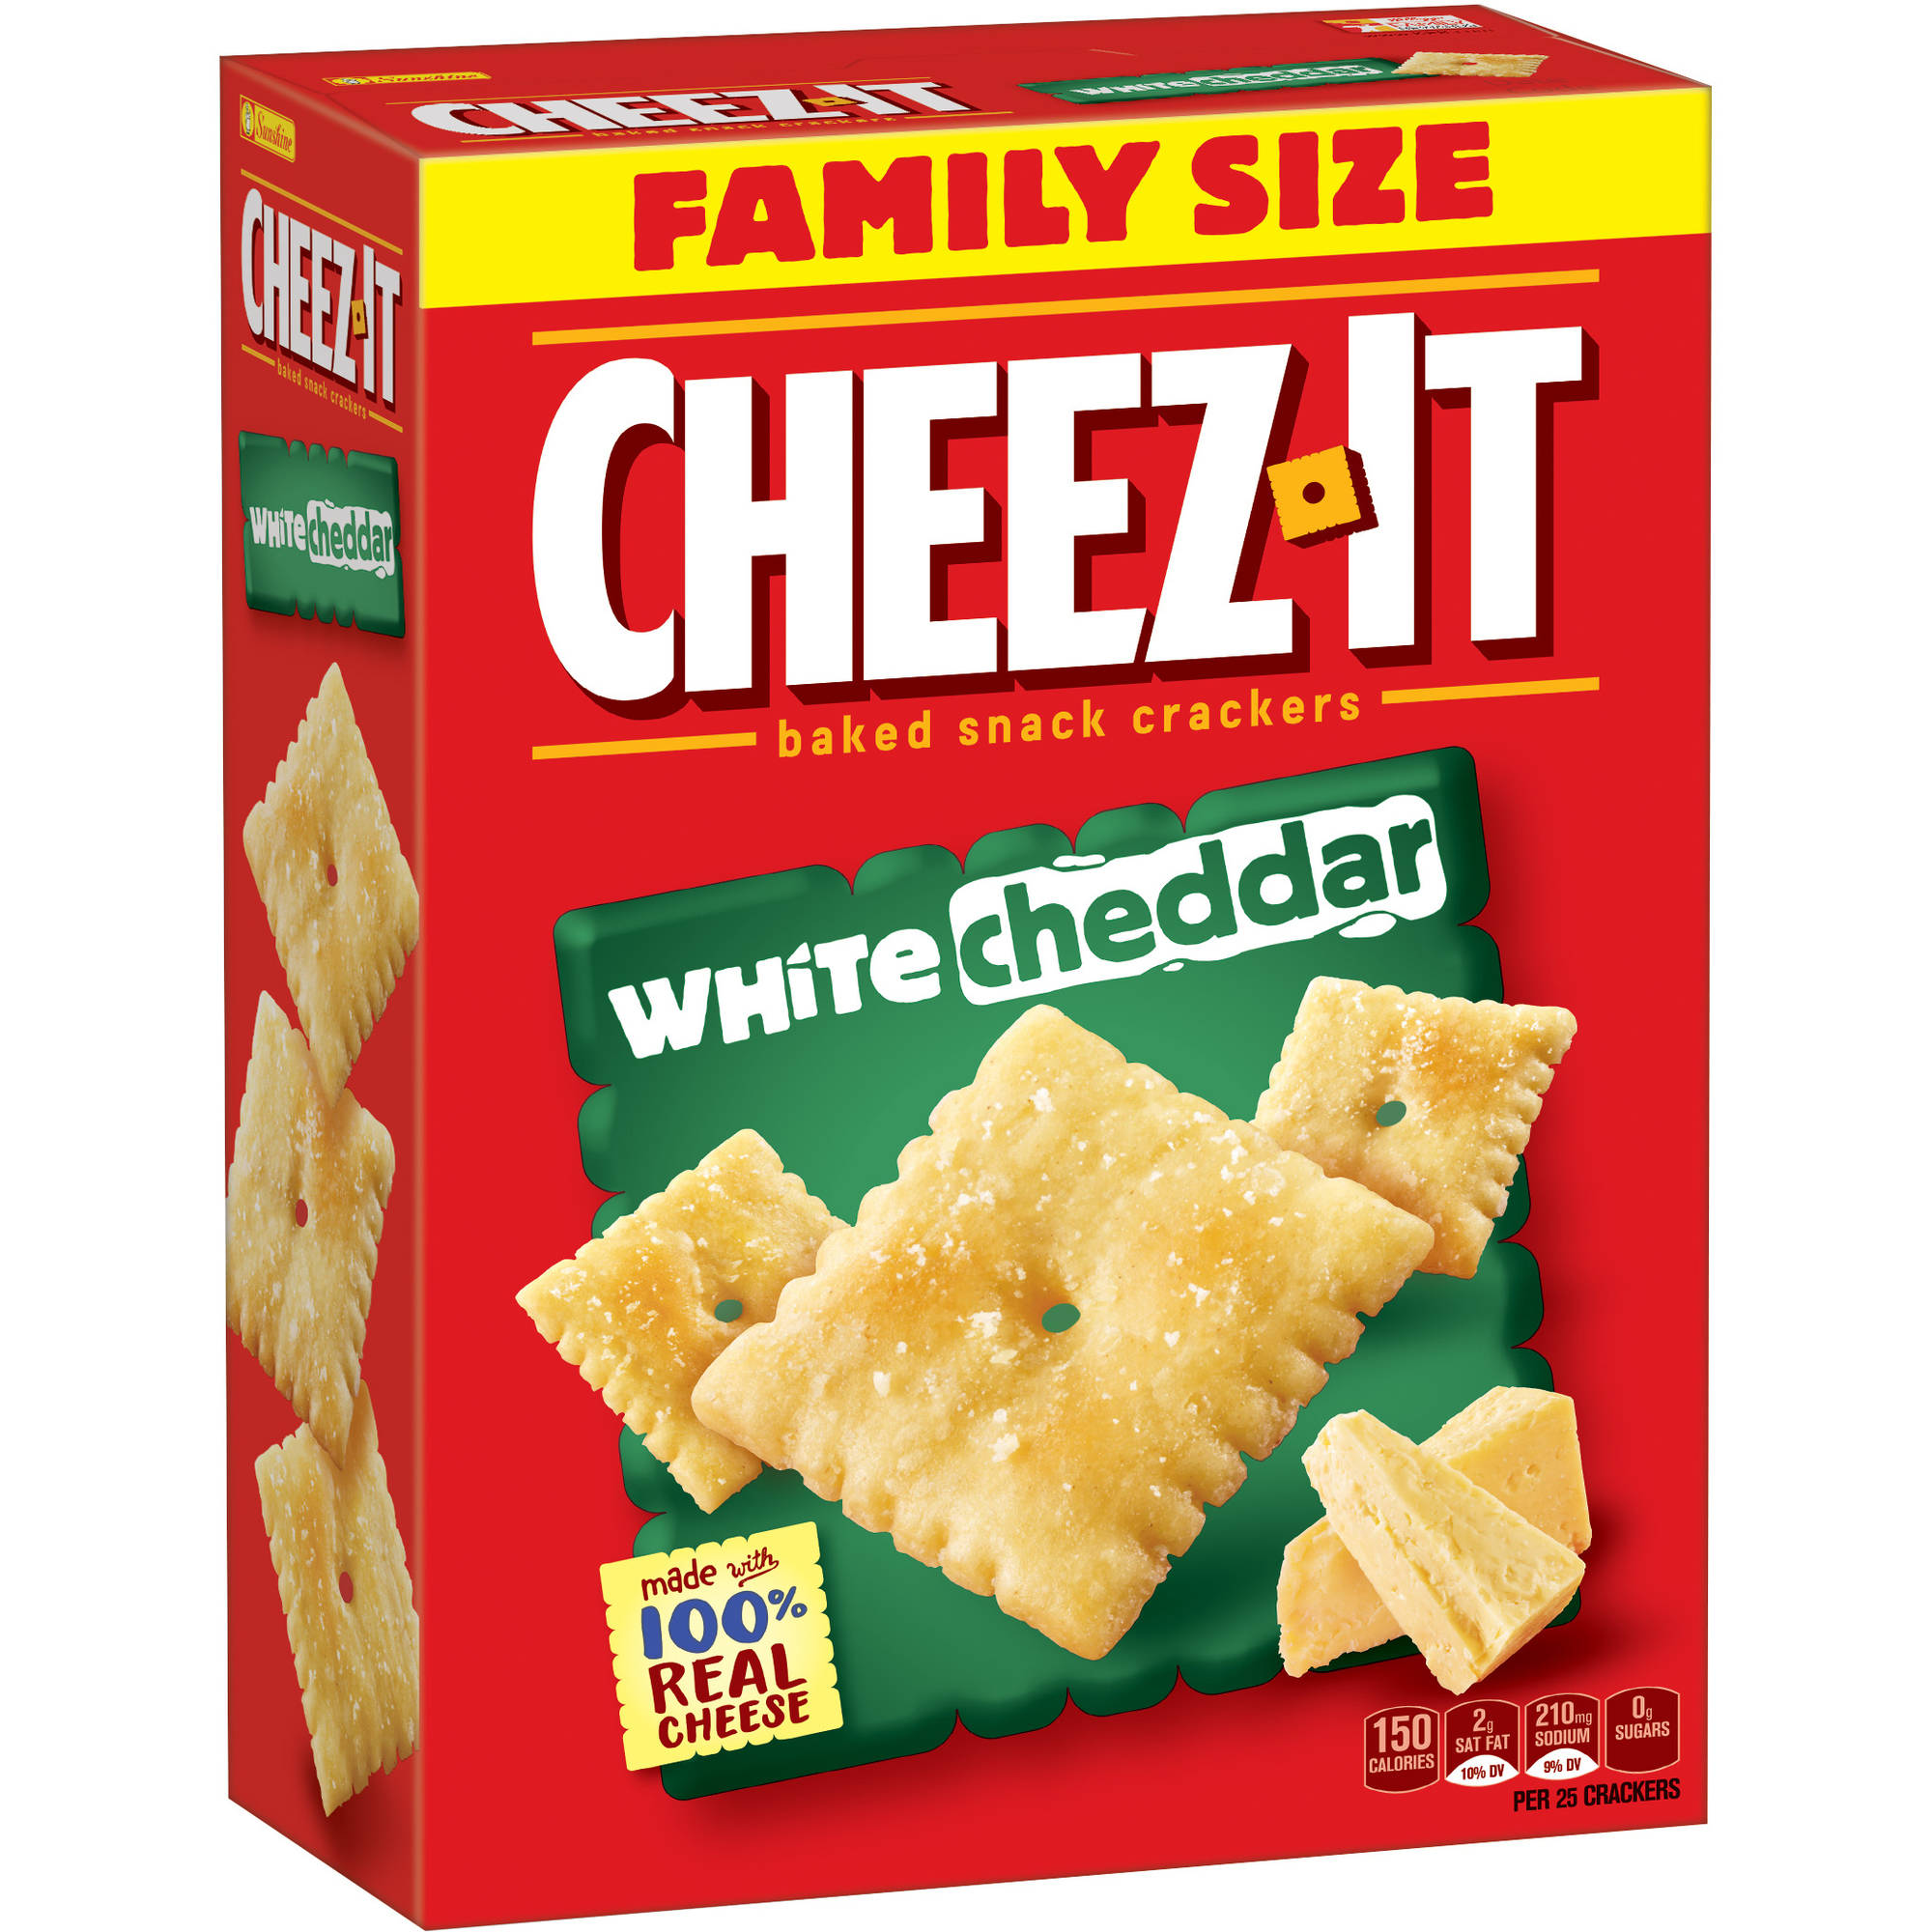 Cheez-It White Cheddar Baked Snack Crackers, 21 oz by Sunshine Biscuits, LLC